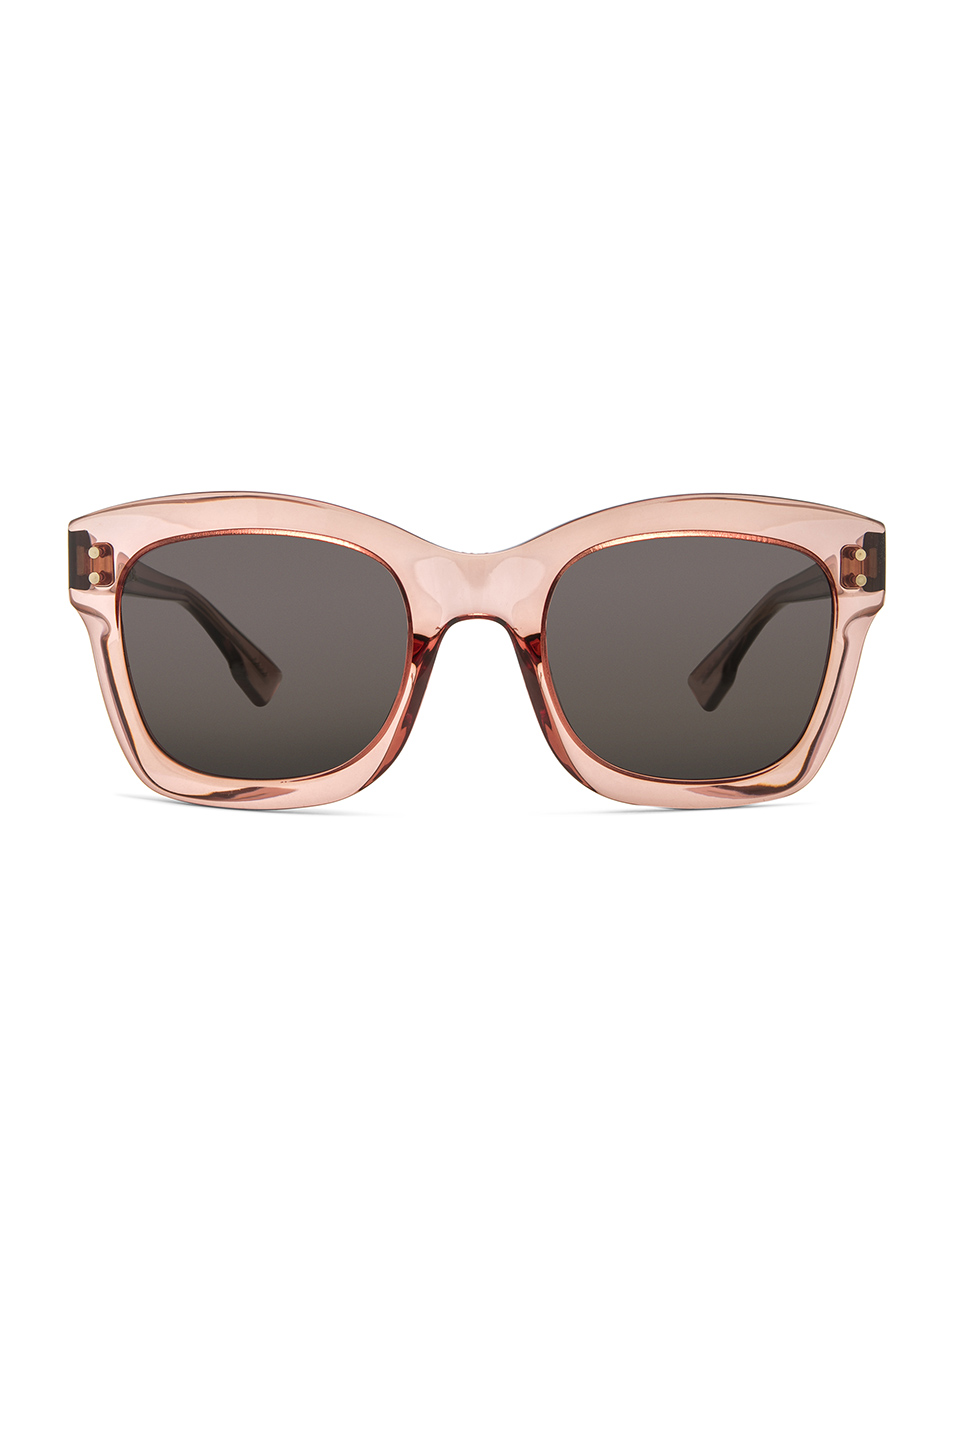 45975ea3b8d2 Buy Original Dior Izon Sunglasses at Indonesia